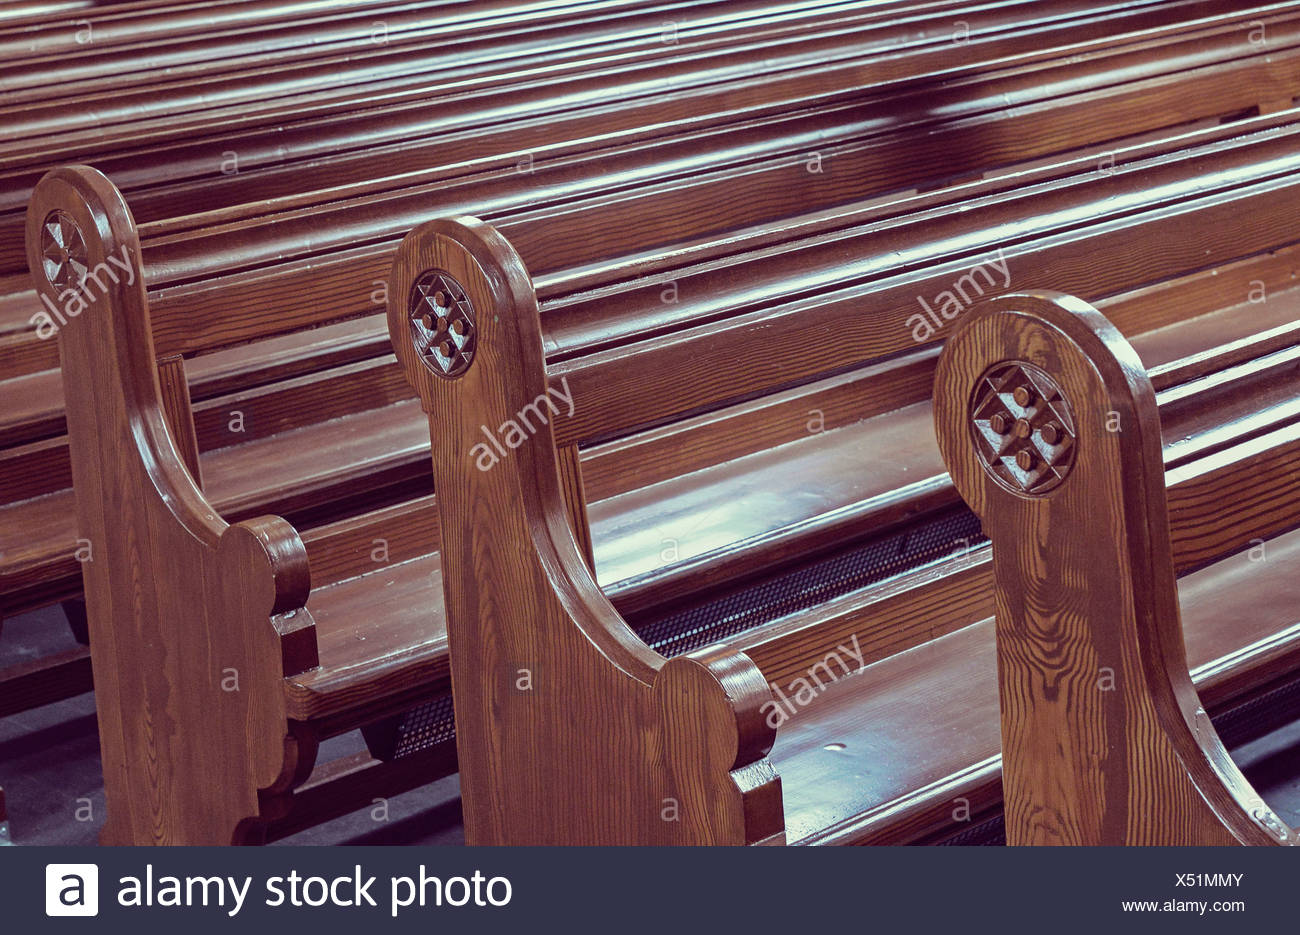 Wooden benches arranged in a row at pew - Stock Image